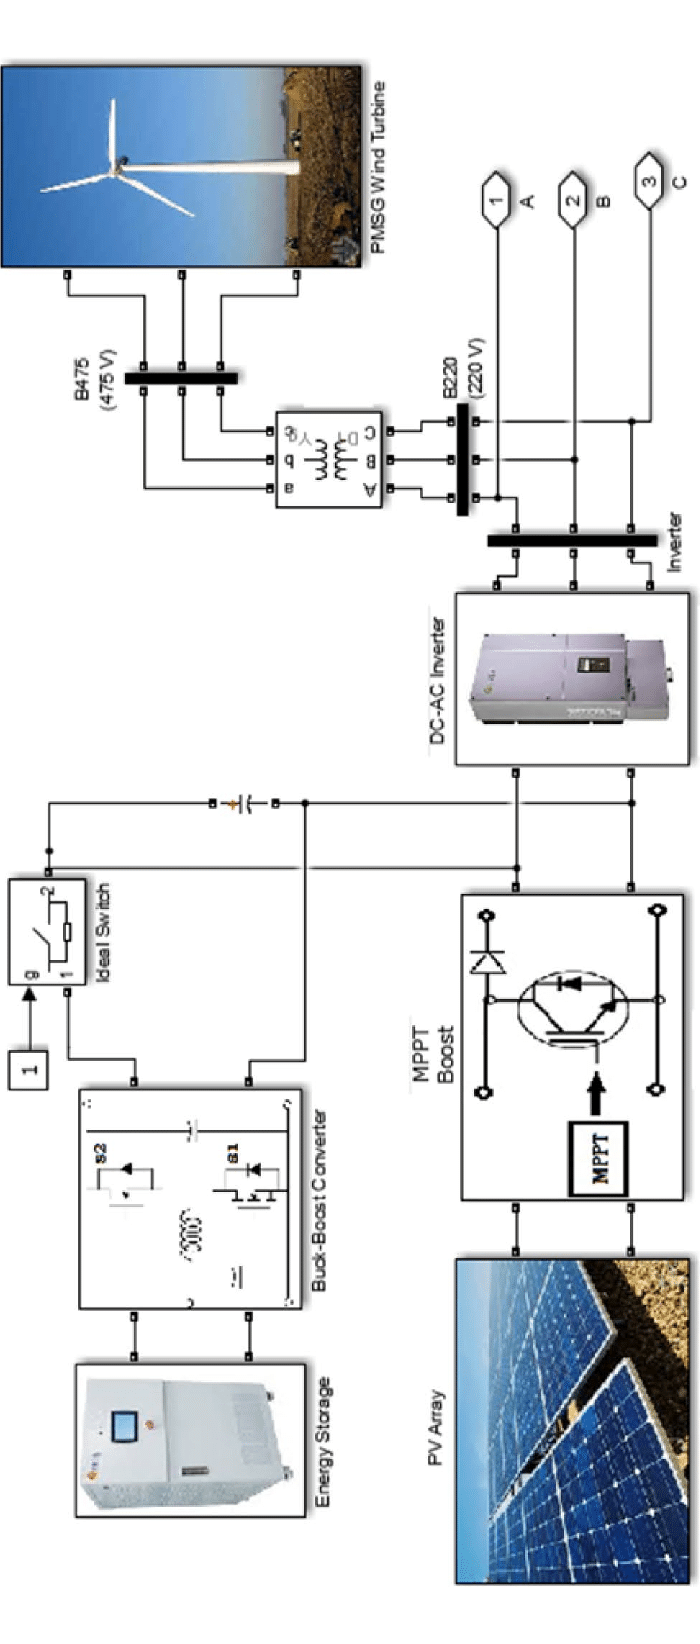 hight resolution of simulink circuit connecting the wind turbine to the battery and pv panels